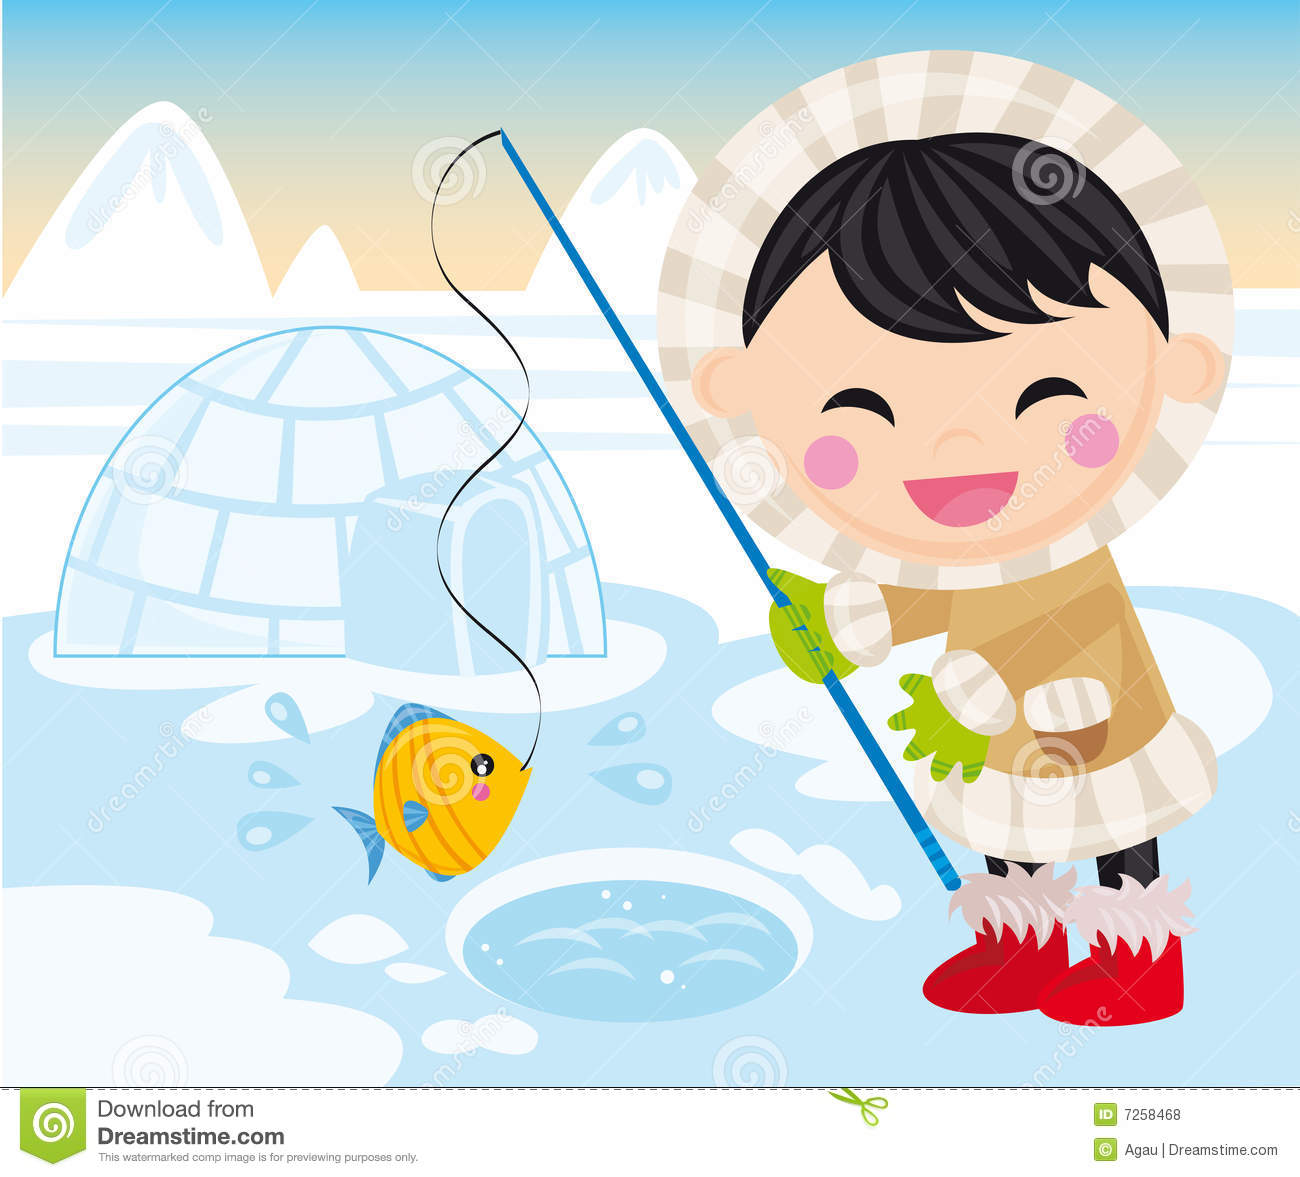 Baby eskimo stock vector. Image of water, home, cold ...